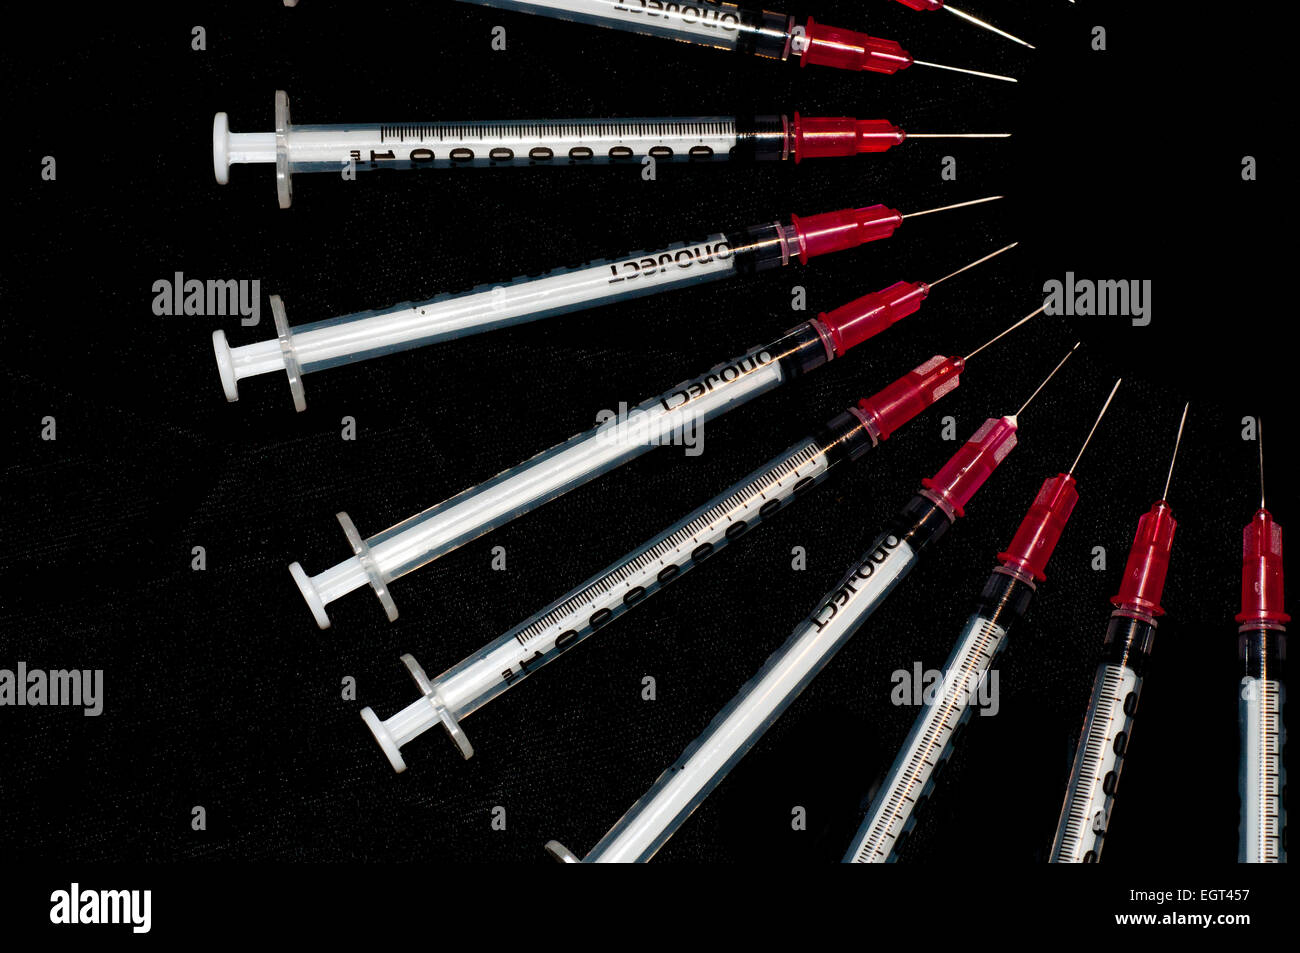 Used syringes arranged in an arc; concept shot for drug abuse - Stock Image